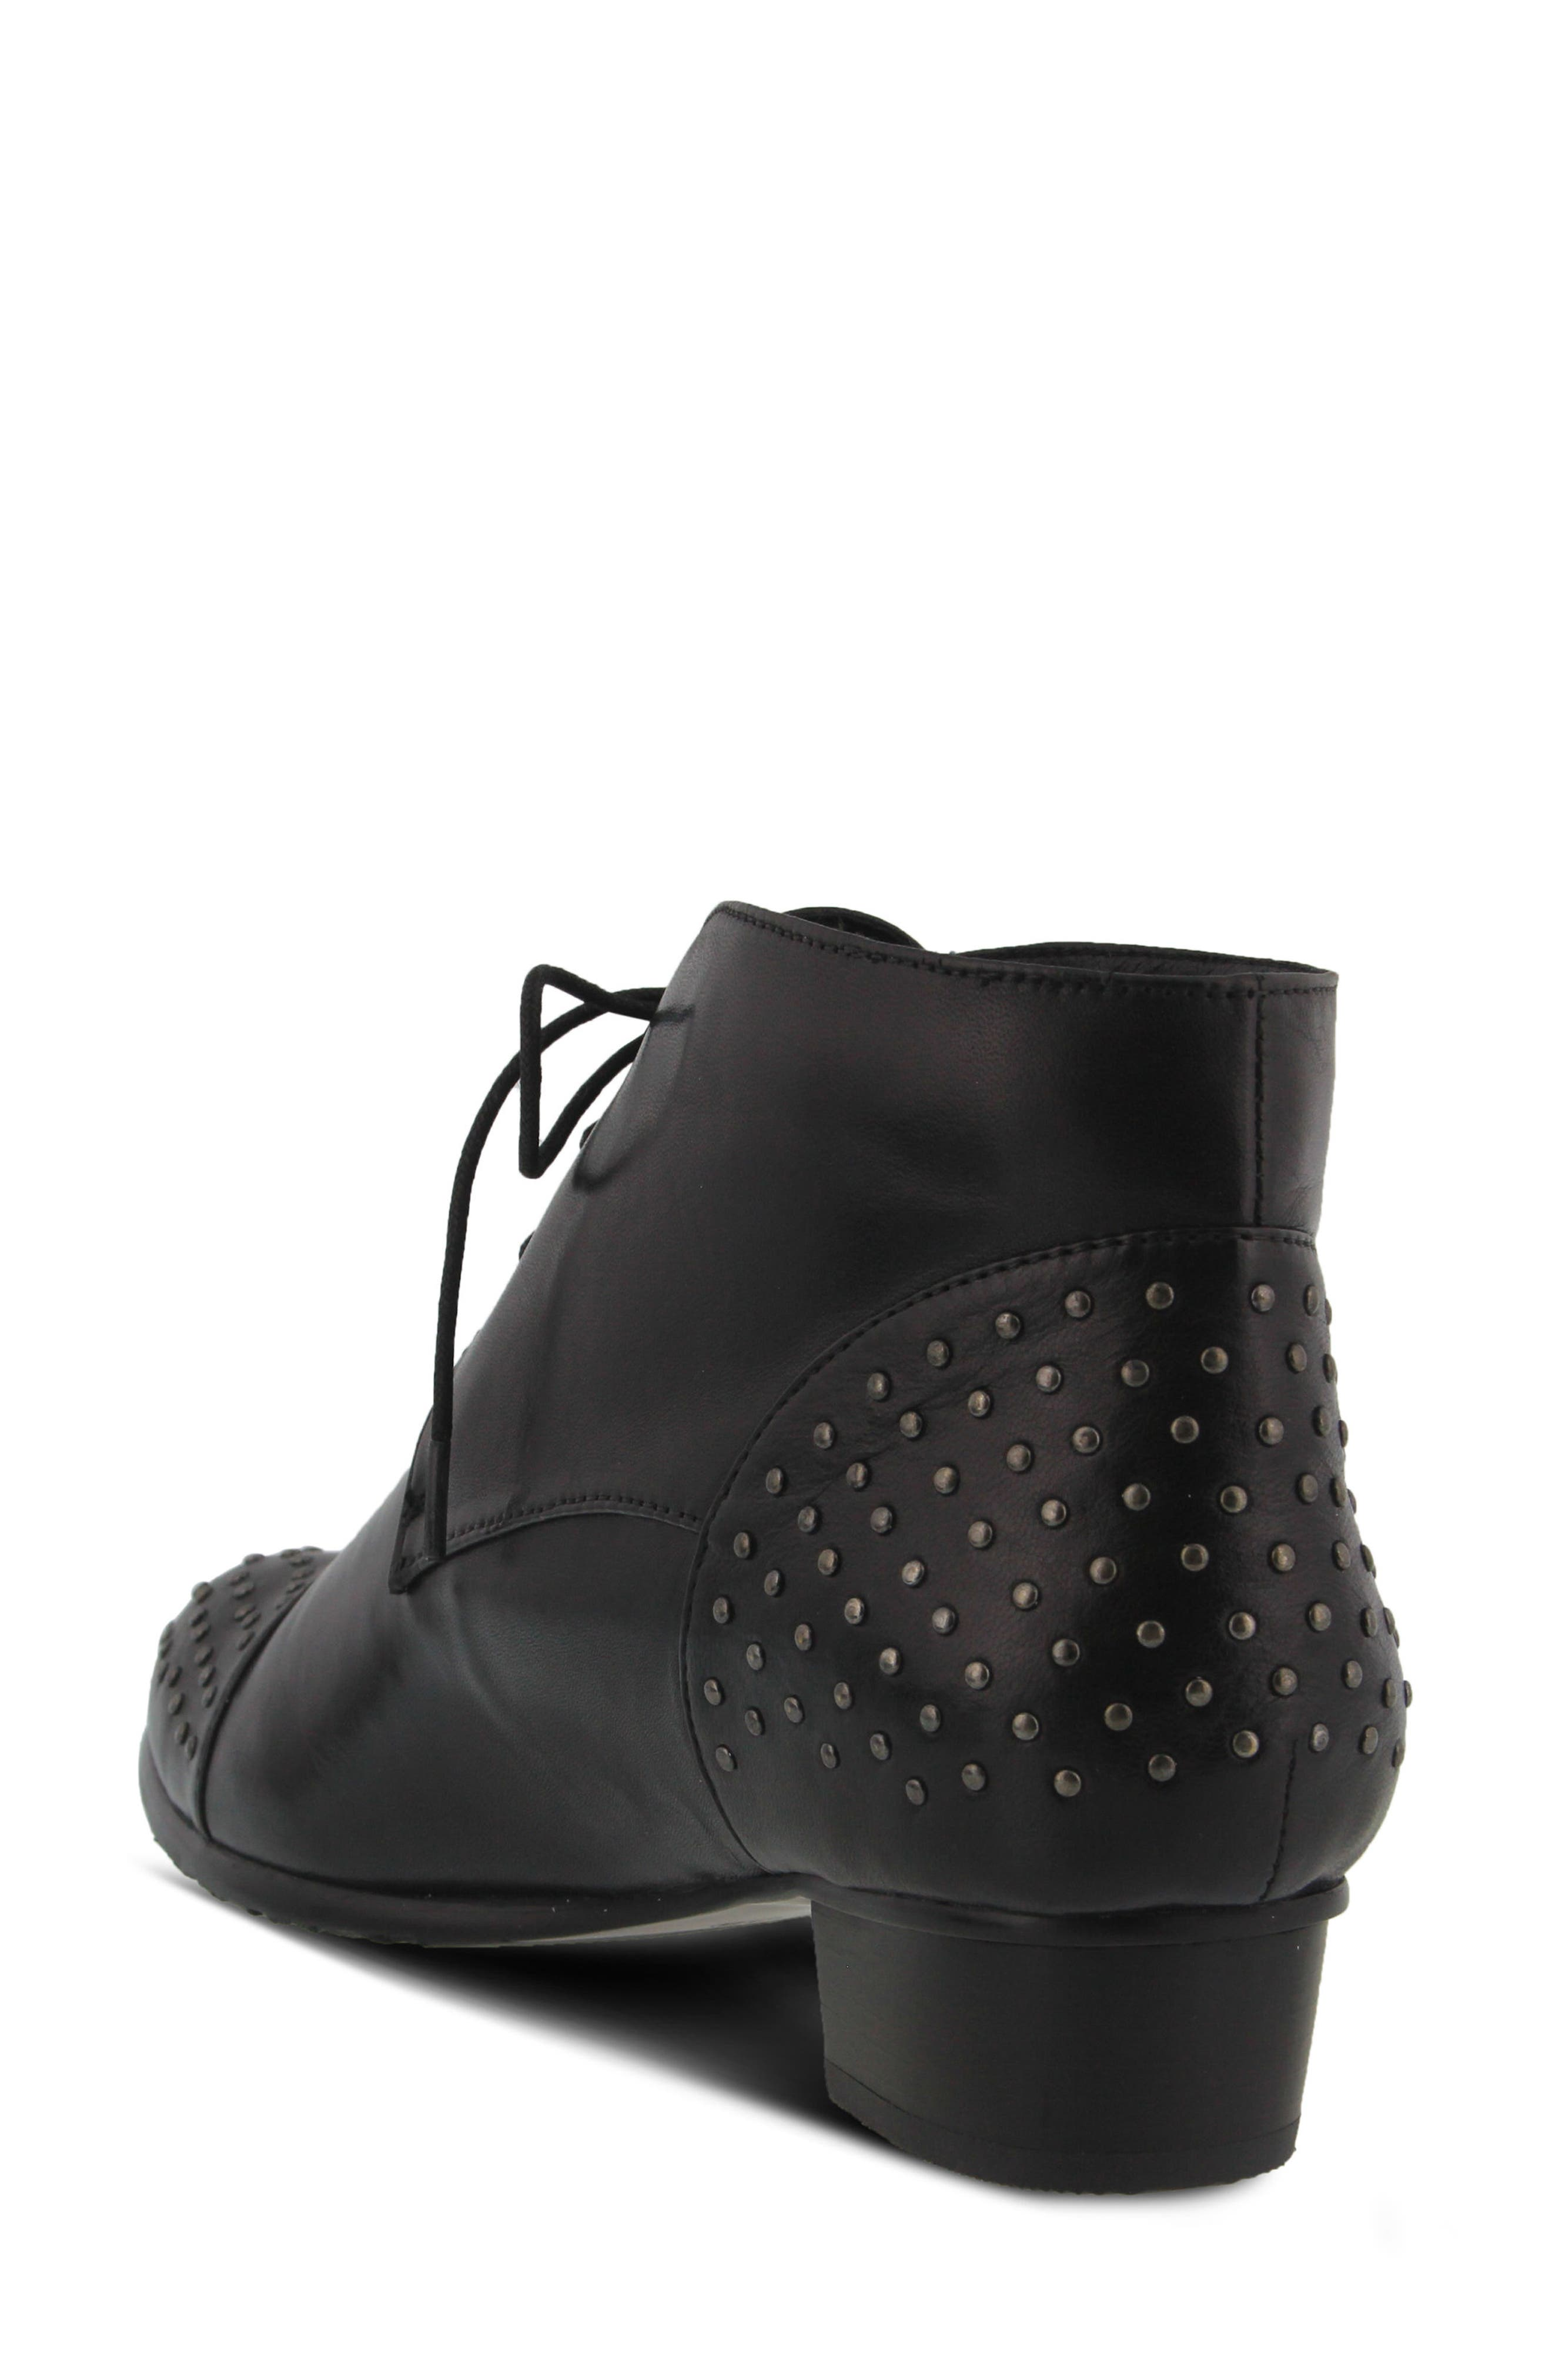 Giovanna Studded Bootie,                             Alternate thumbnail 2, color,                             BLACK LEATHER